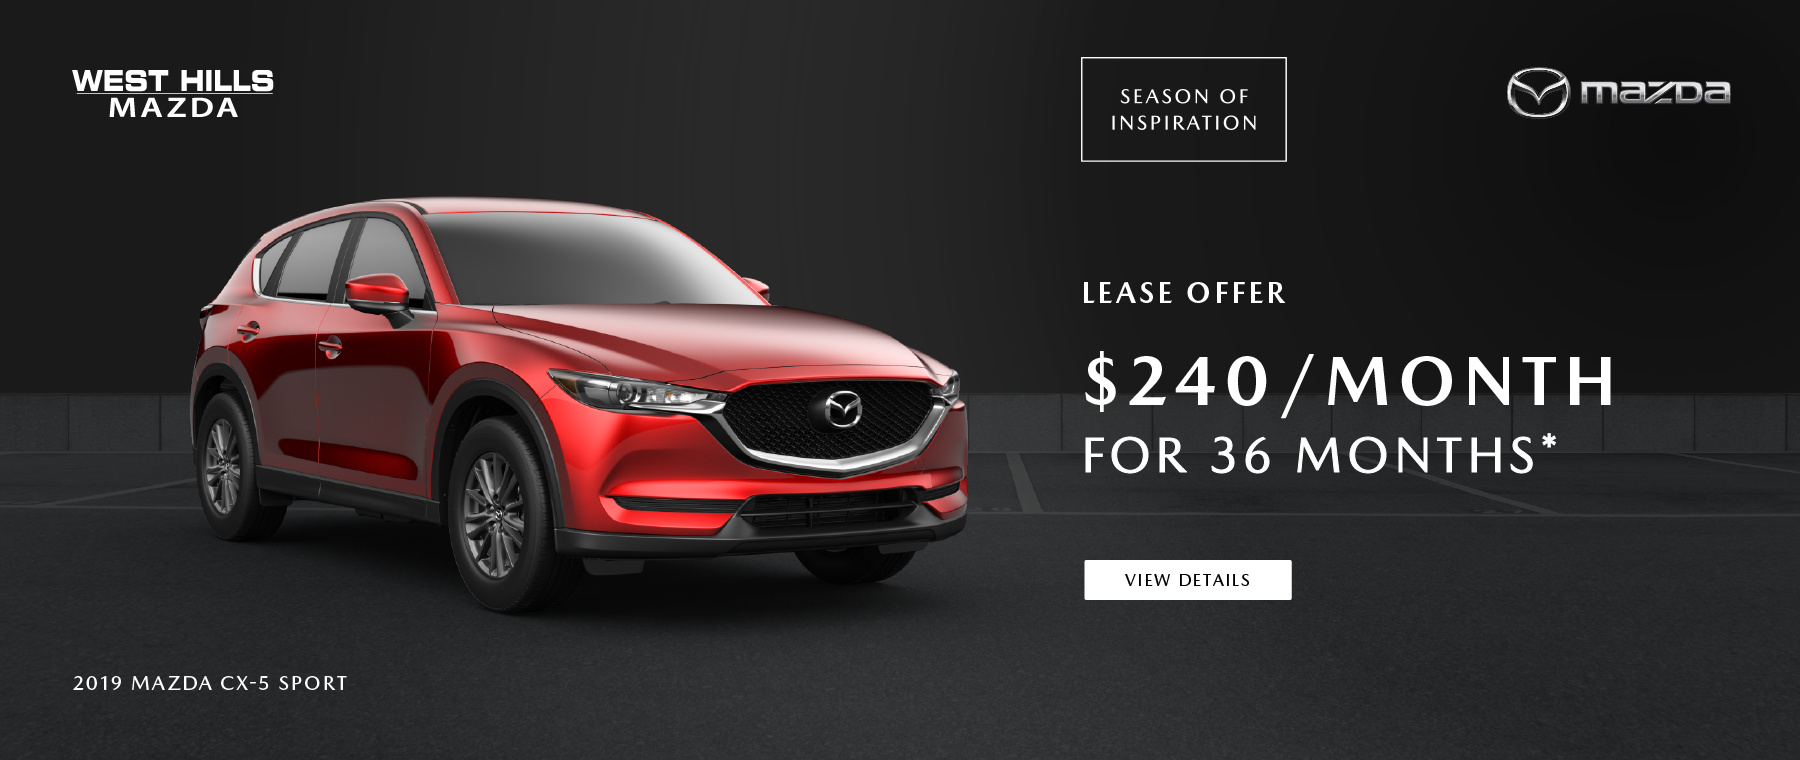 2019 Mazda CX-9 All Trims  (featured vehicle)  .9% APR for 60mos.* *Valid on any new 2019 Mazda CX-9 All Trims. .9% APR for 60 mos. Subject to credit approval through participating lender – not all will qualify. Down payment and other factors may affect qualification. MSRP starting at $41,355. 60 months at $17.53 per month per $1000 financed with $0 down. Excludes taxes, tags, registration and title, insurance and dealer charges. A negotiable dealer documentary service fee of up to $150 may be added to the sale price or capitalized cost. Offer Expires: 7/31/2019.